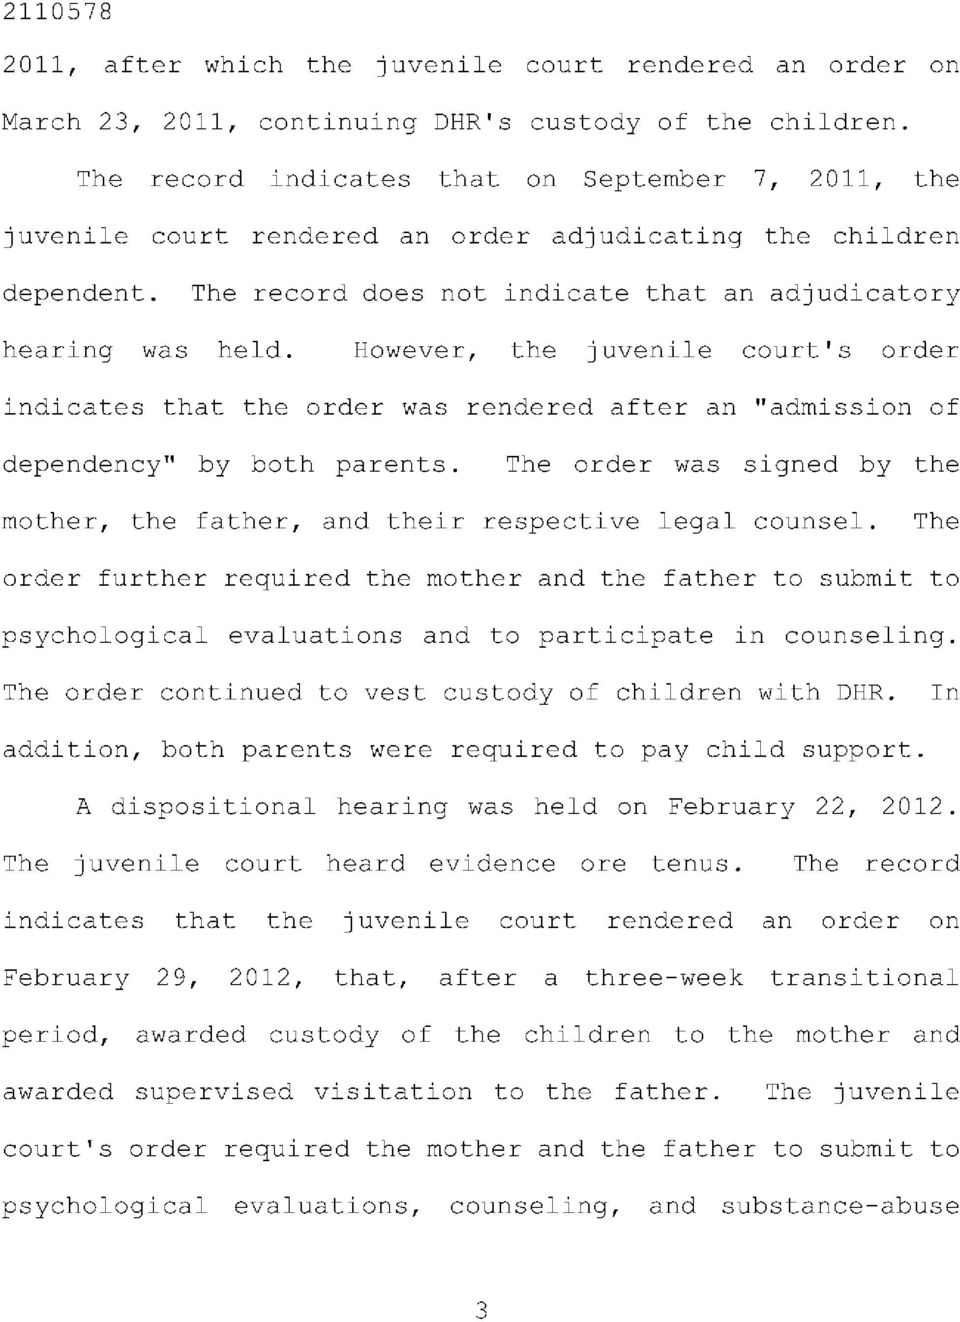 "However, the juvenile court's order indicates that the order was rendered after an ""admission of dependency"" by both parents."